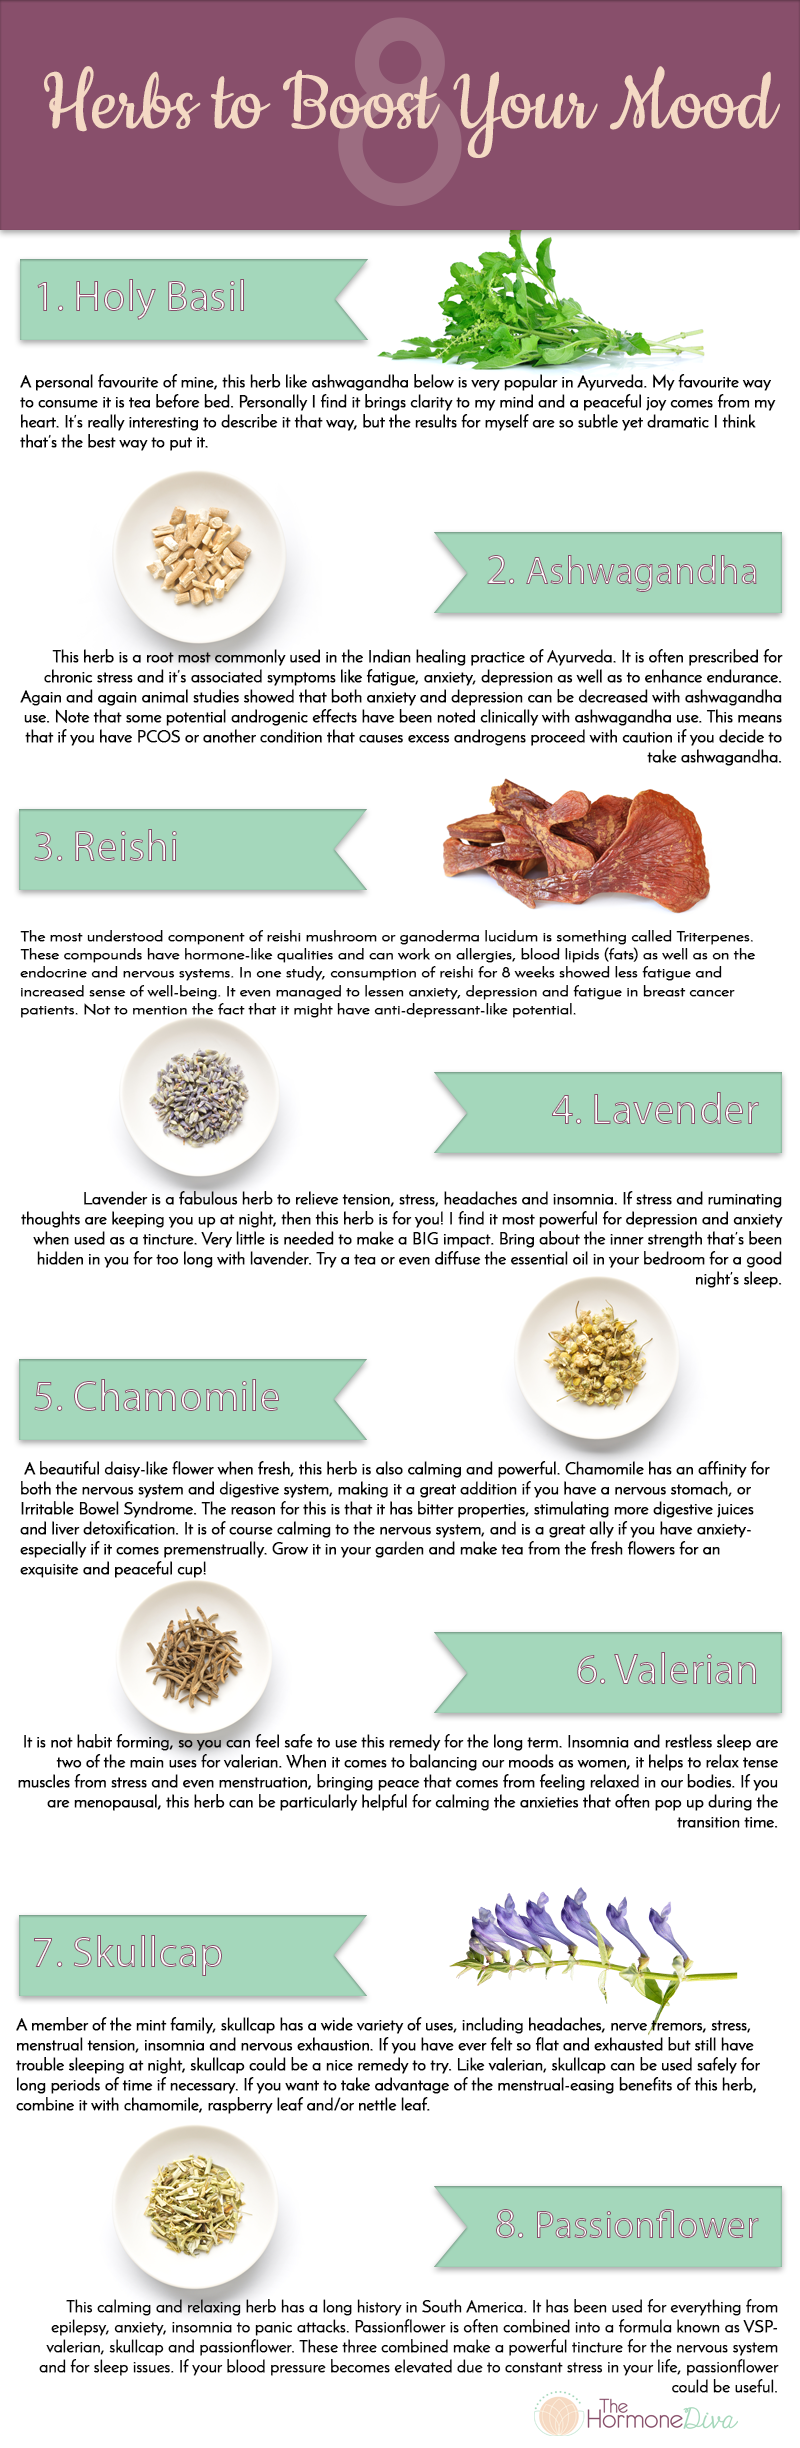 8 Promising Herbs To Boost Your Mood Infographic The Hormone Diva